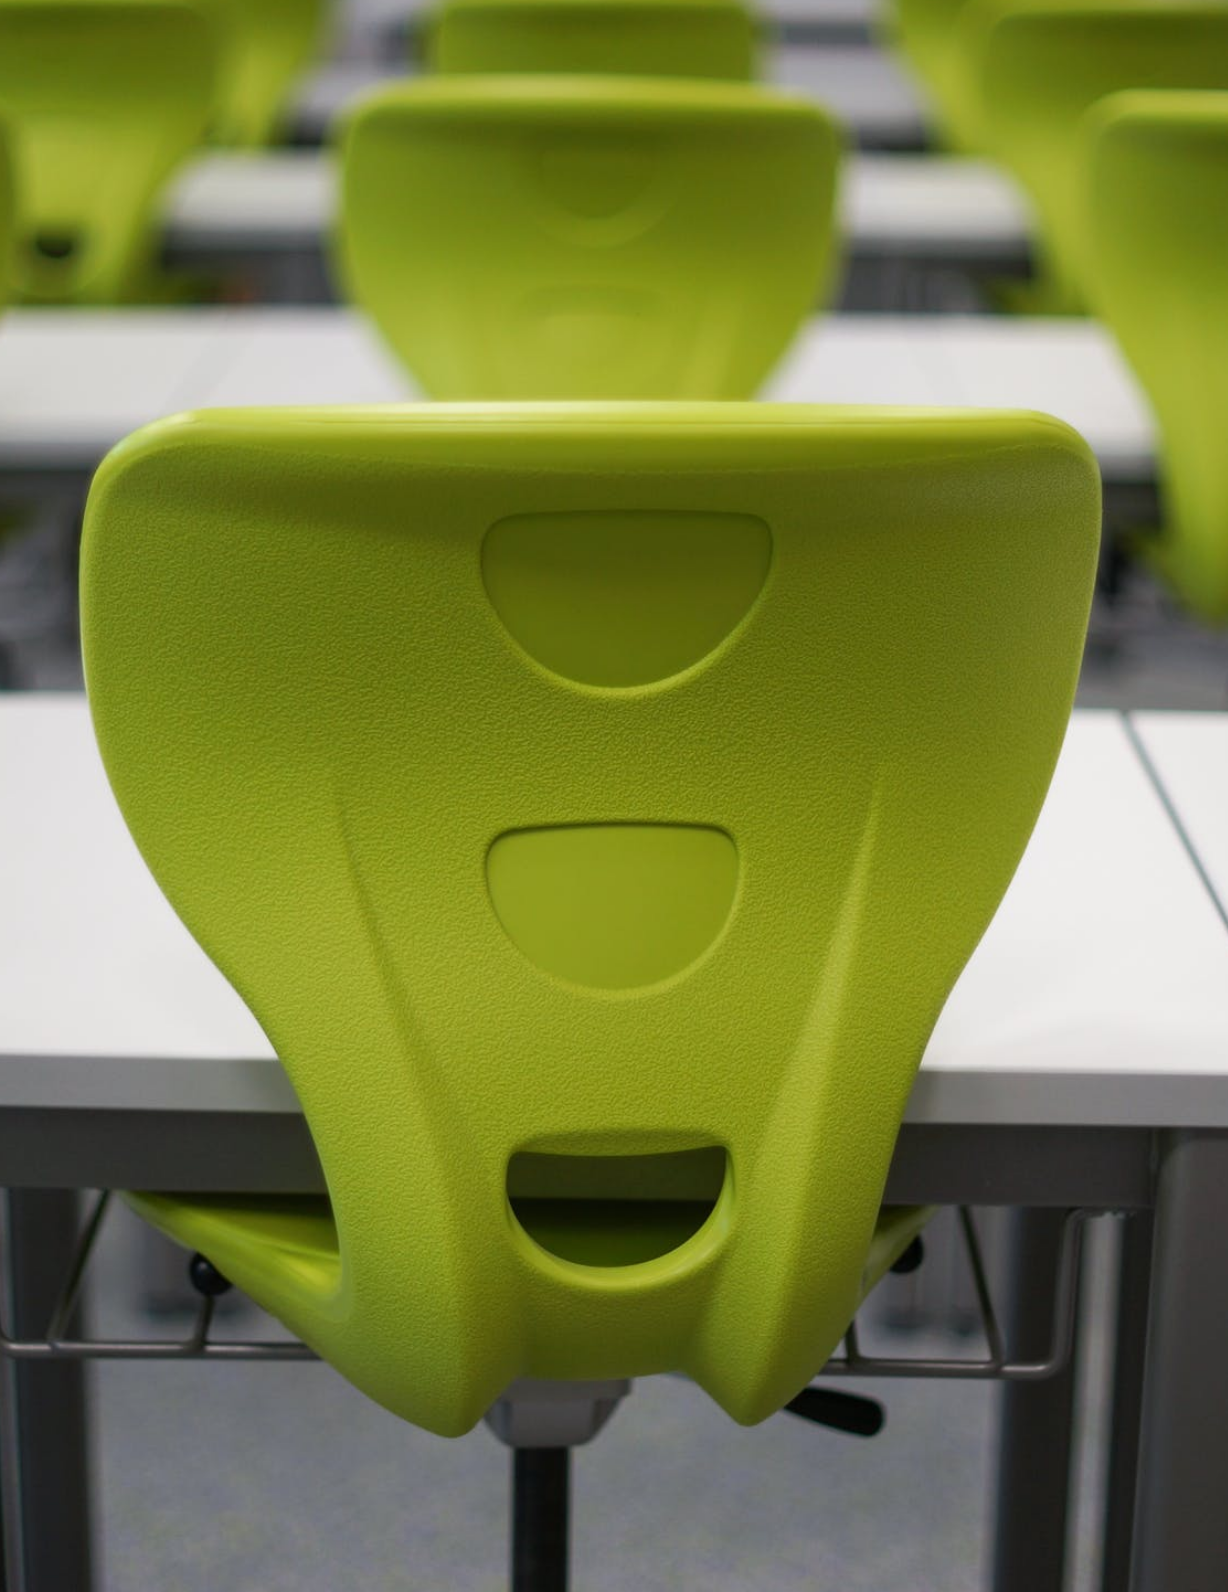 Chairs in a lecture hall